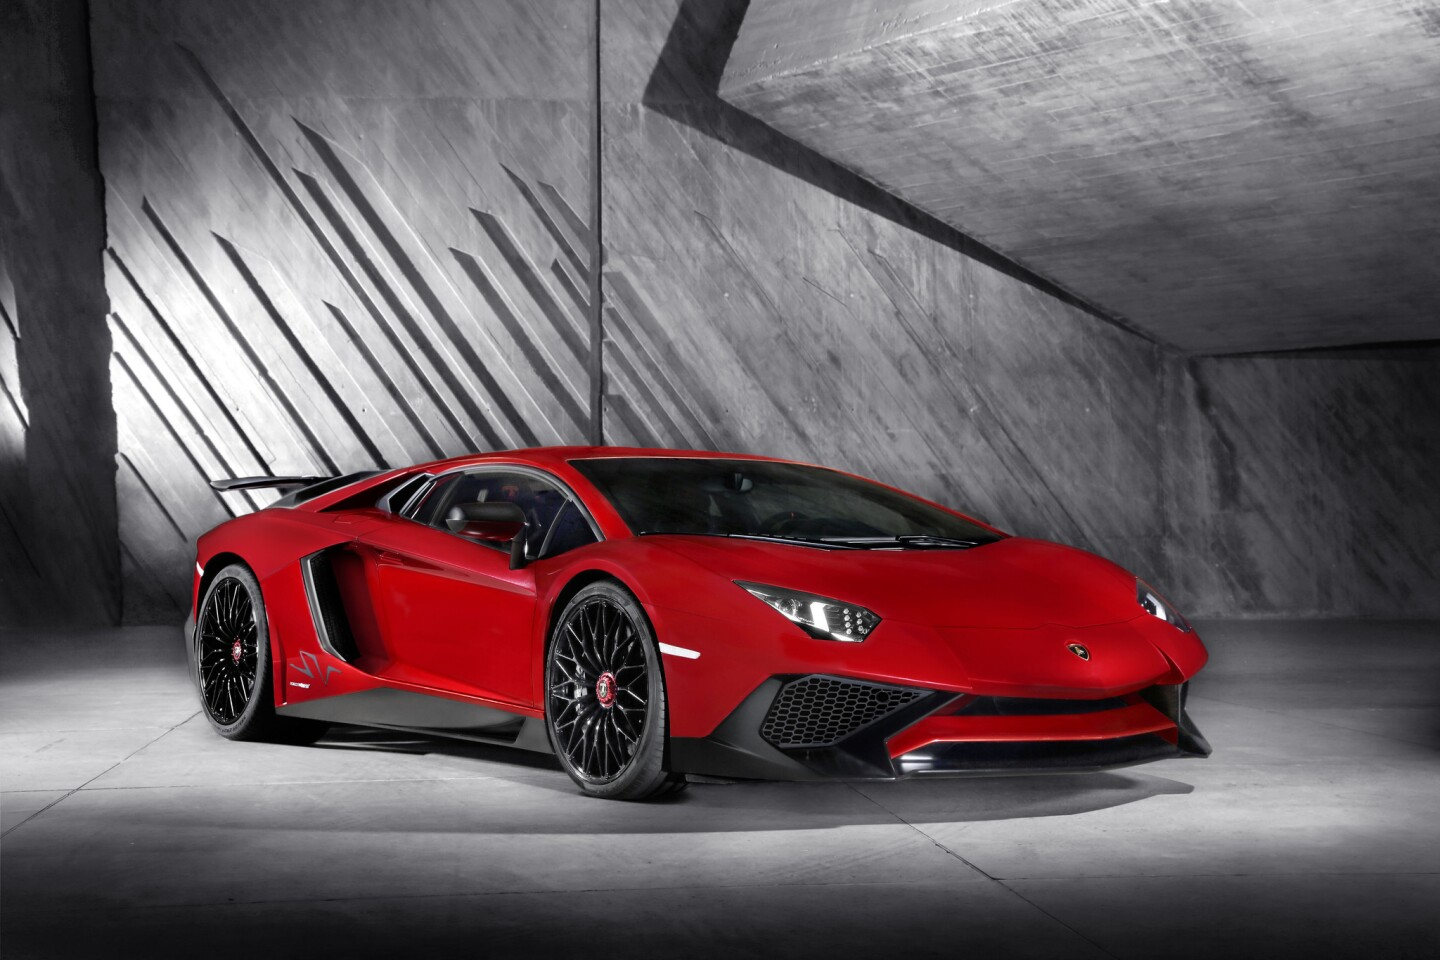 Lamborghini's new Aventador LP 750-4 Superveloce (SV) sheds 110 pounds and adds roughly 50 horsepower for 740 total horsepower and a top speed of more than 217 mph.